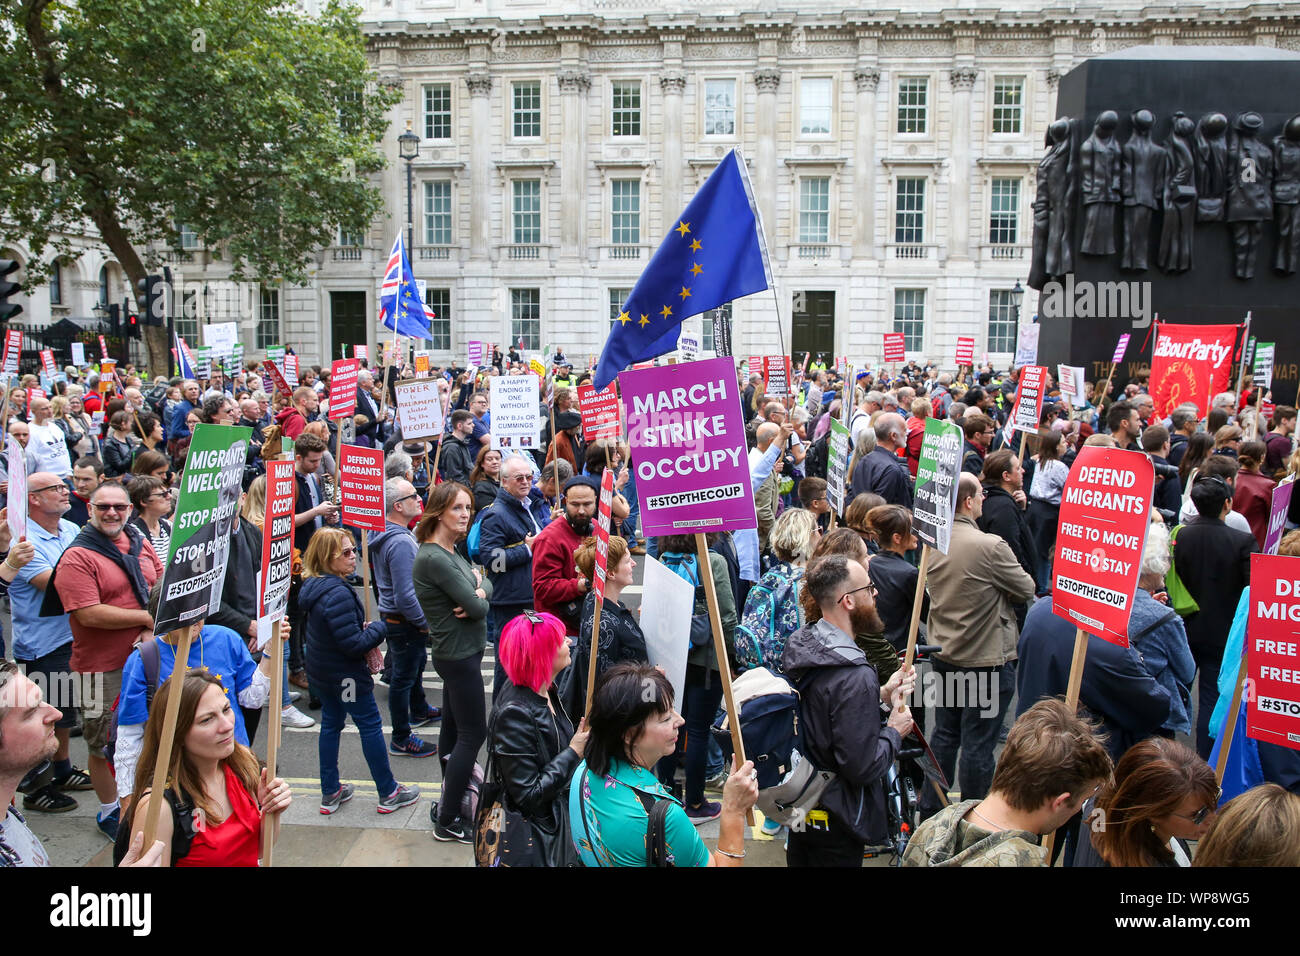 London, UK. 07th Sep, 2019. Anti-Brexit campaigners with placards and EU flags demonstrates at London's Whitehall in Westminster.The campaigners are demonstrating to oppose the British Prime Minister Boris Johnson's plans to suspend UK Parliament until October 14. Credit: SOPA Images Limited/Alamy Live News Stock Photo